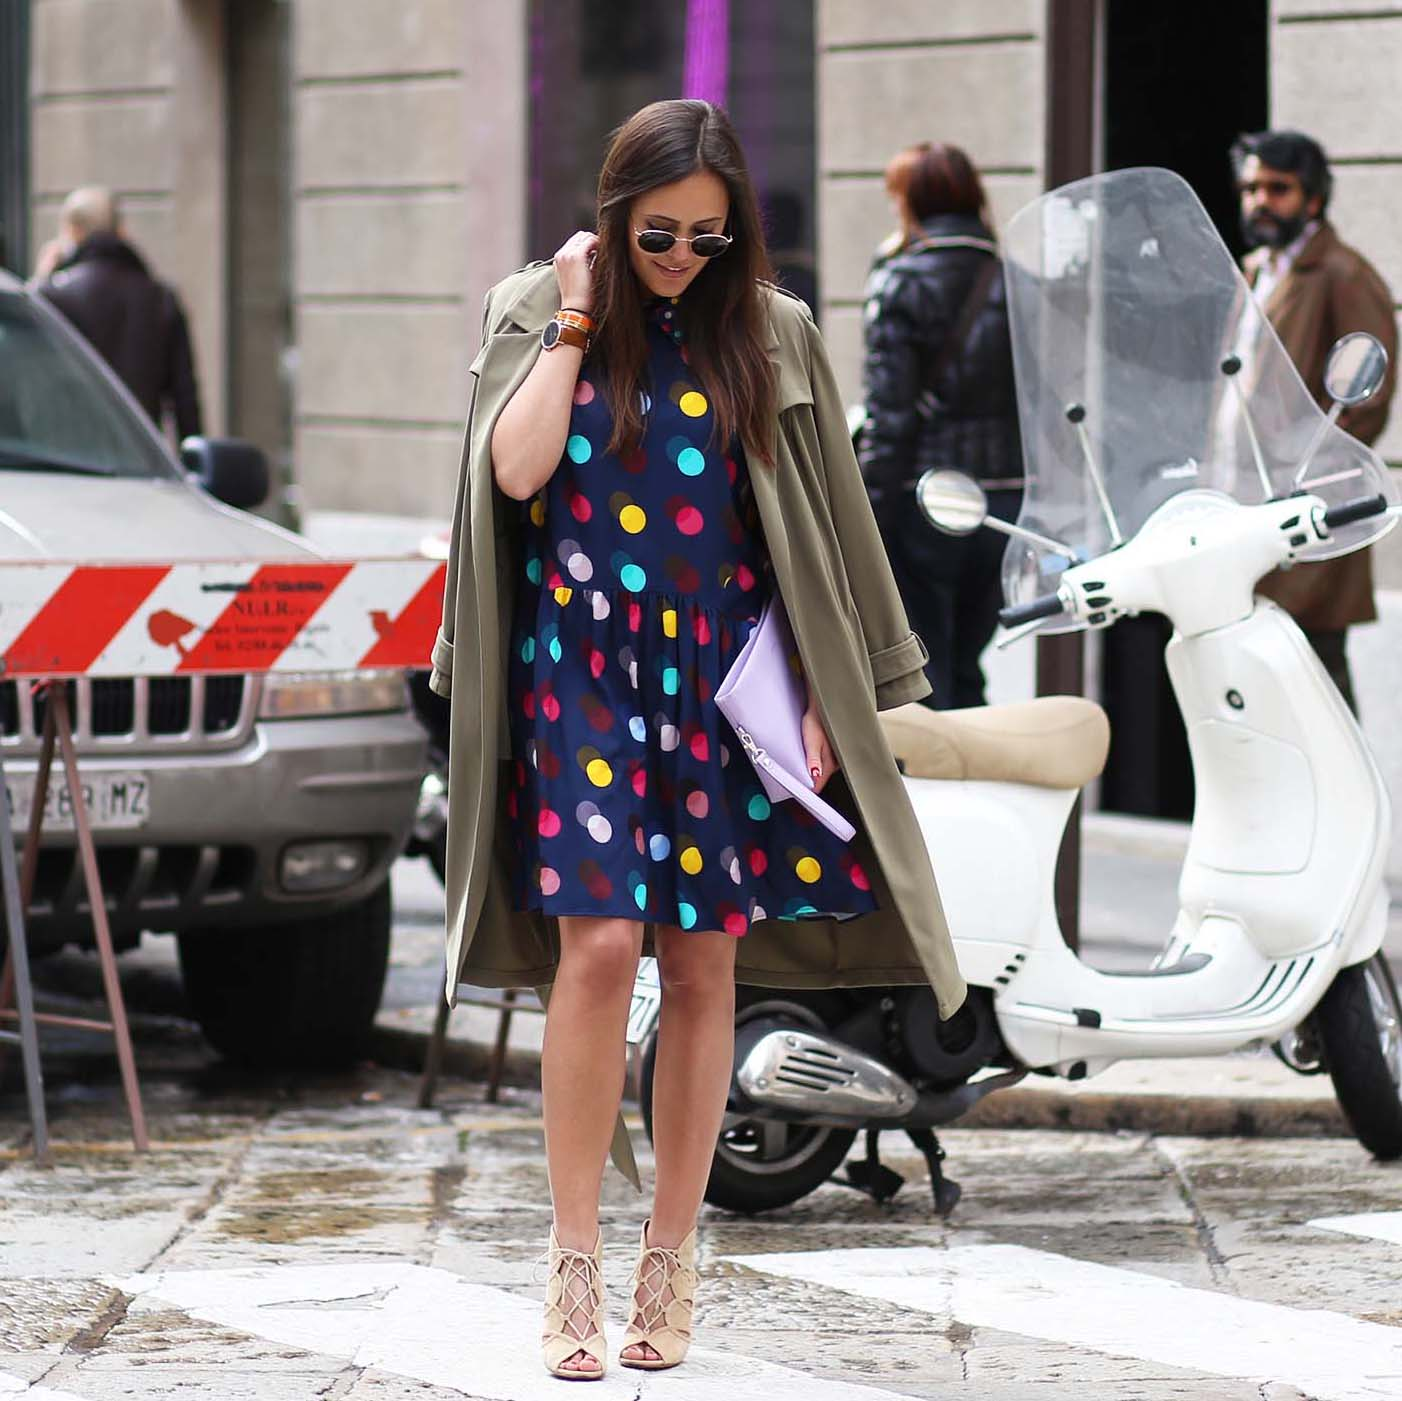 MILAN STREETSTYLE – DO YOU LIKE POLKA DOTS?